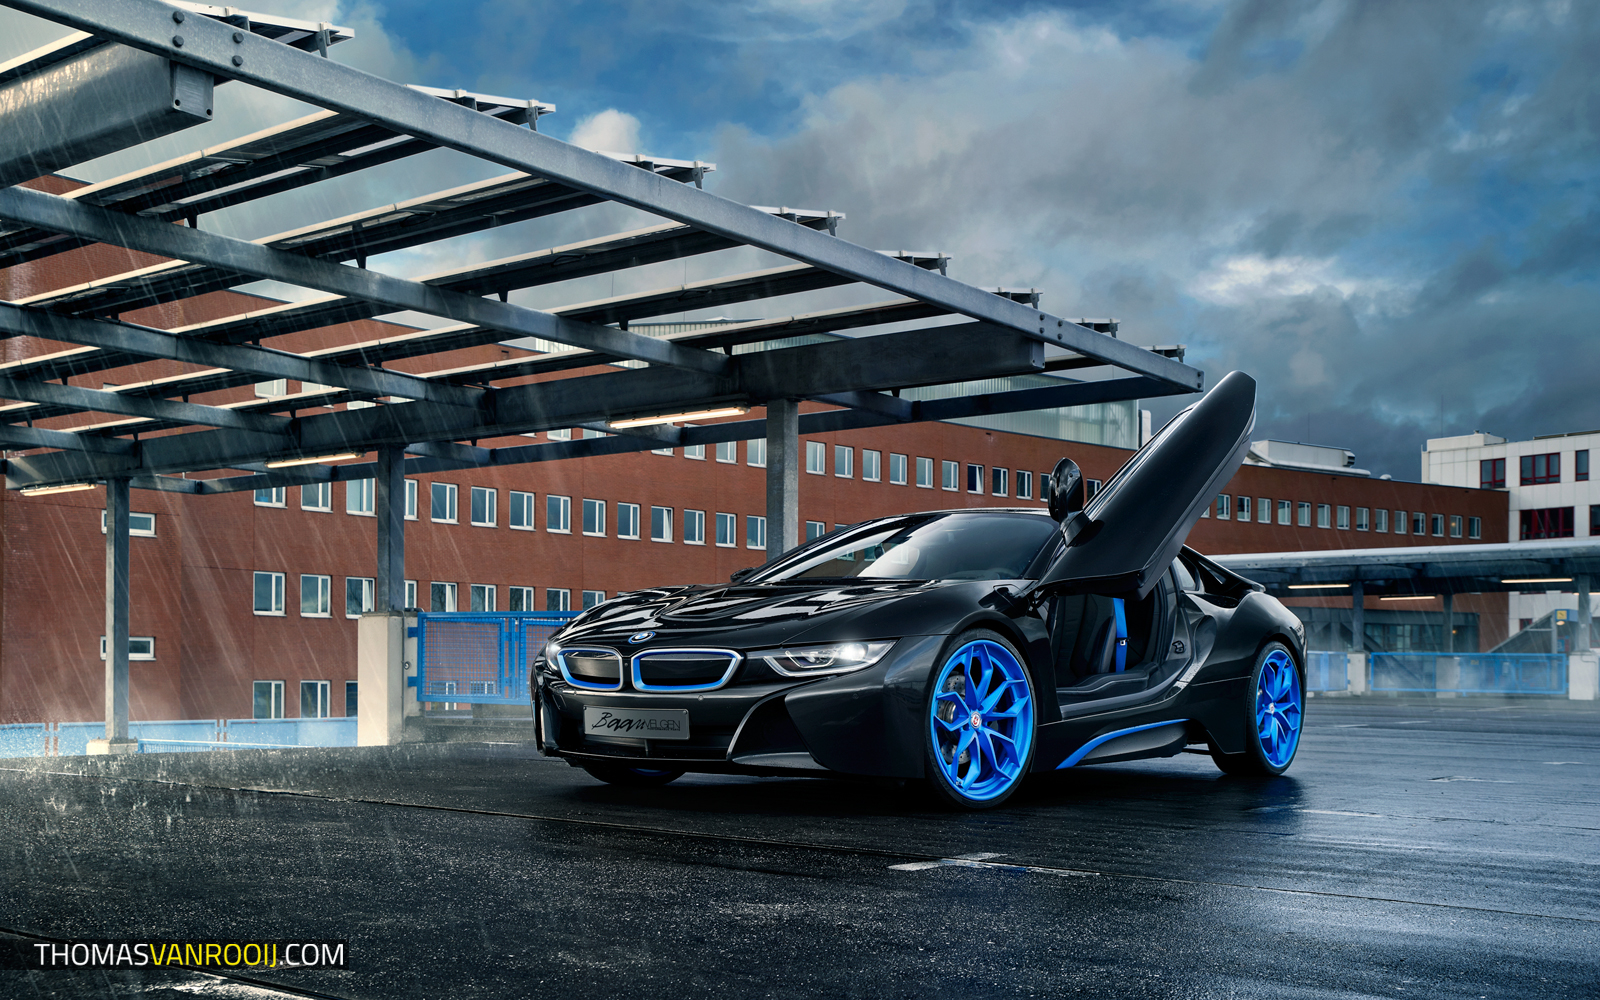 1_Thomas van Rooij Photography Fotografie BMW i8